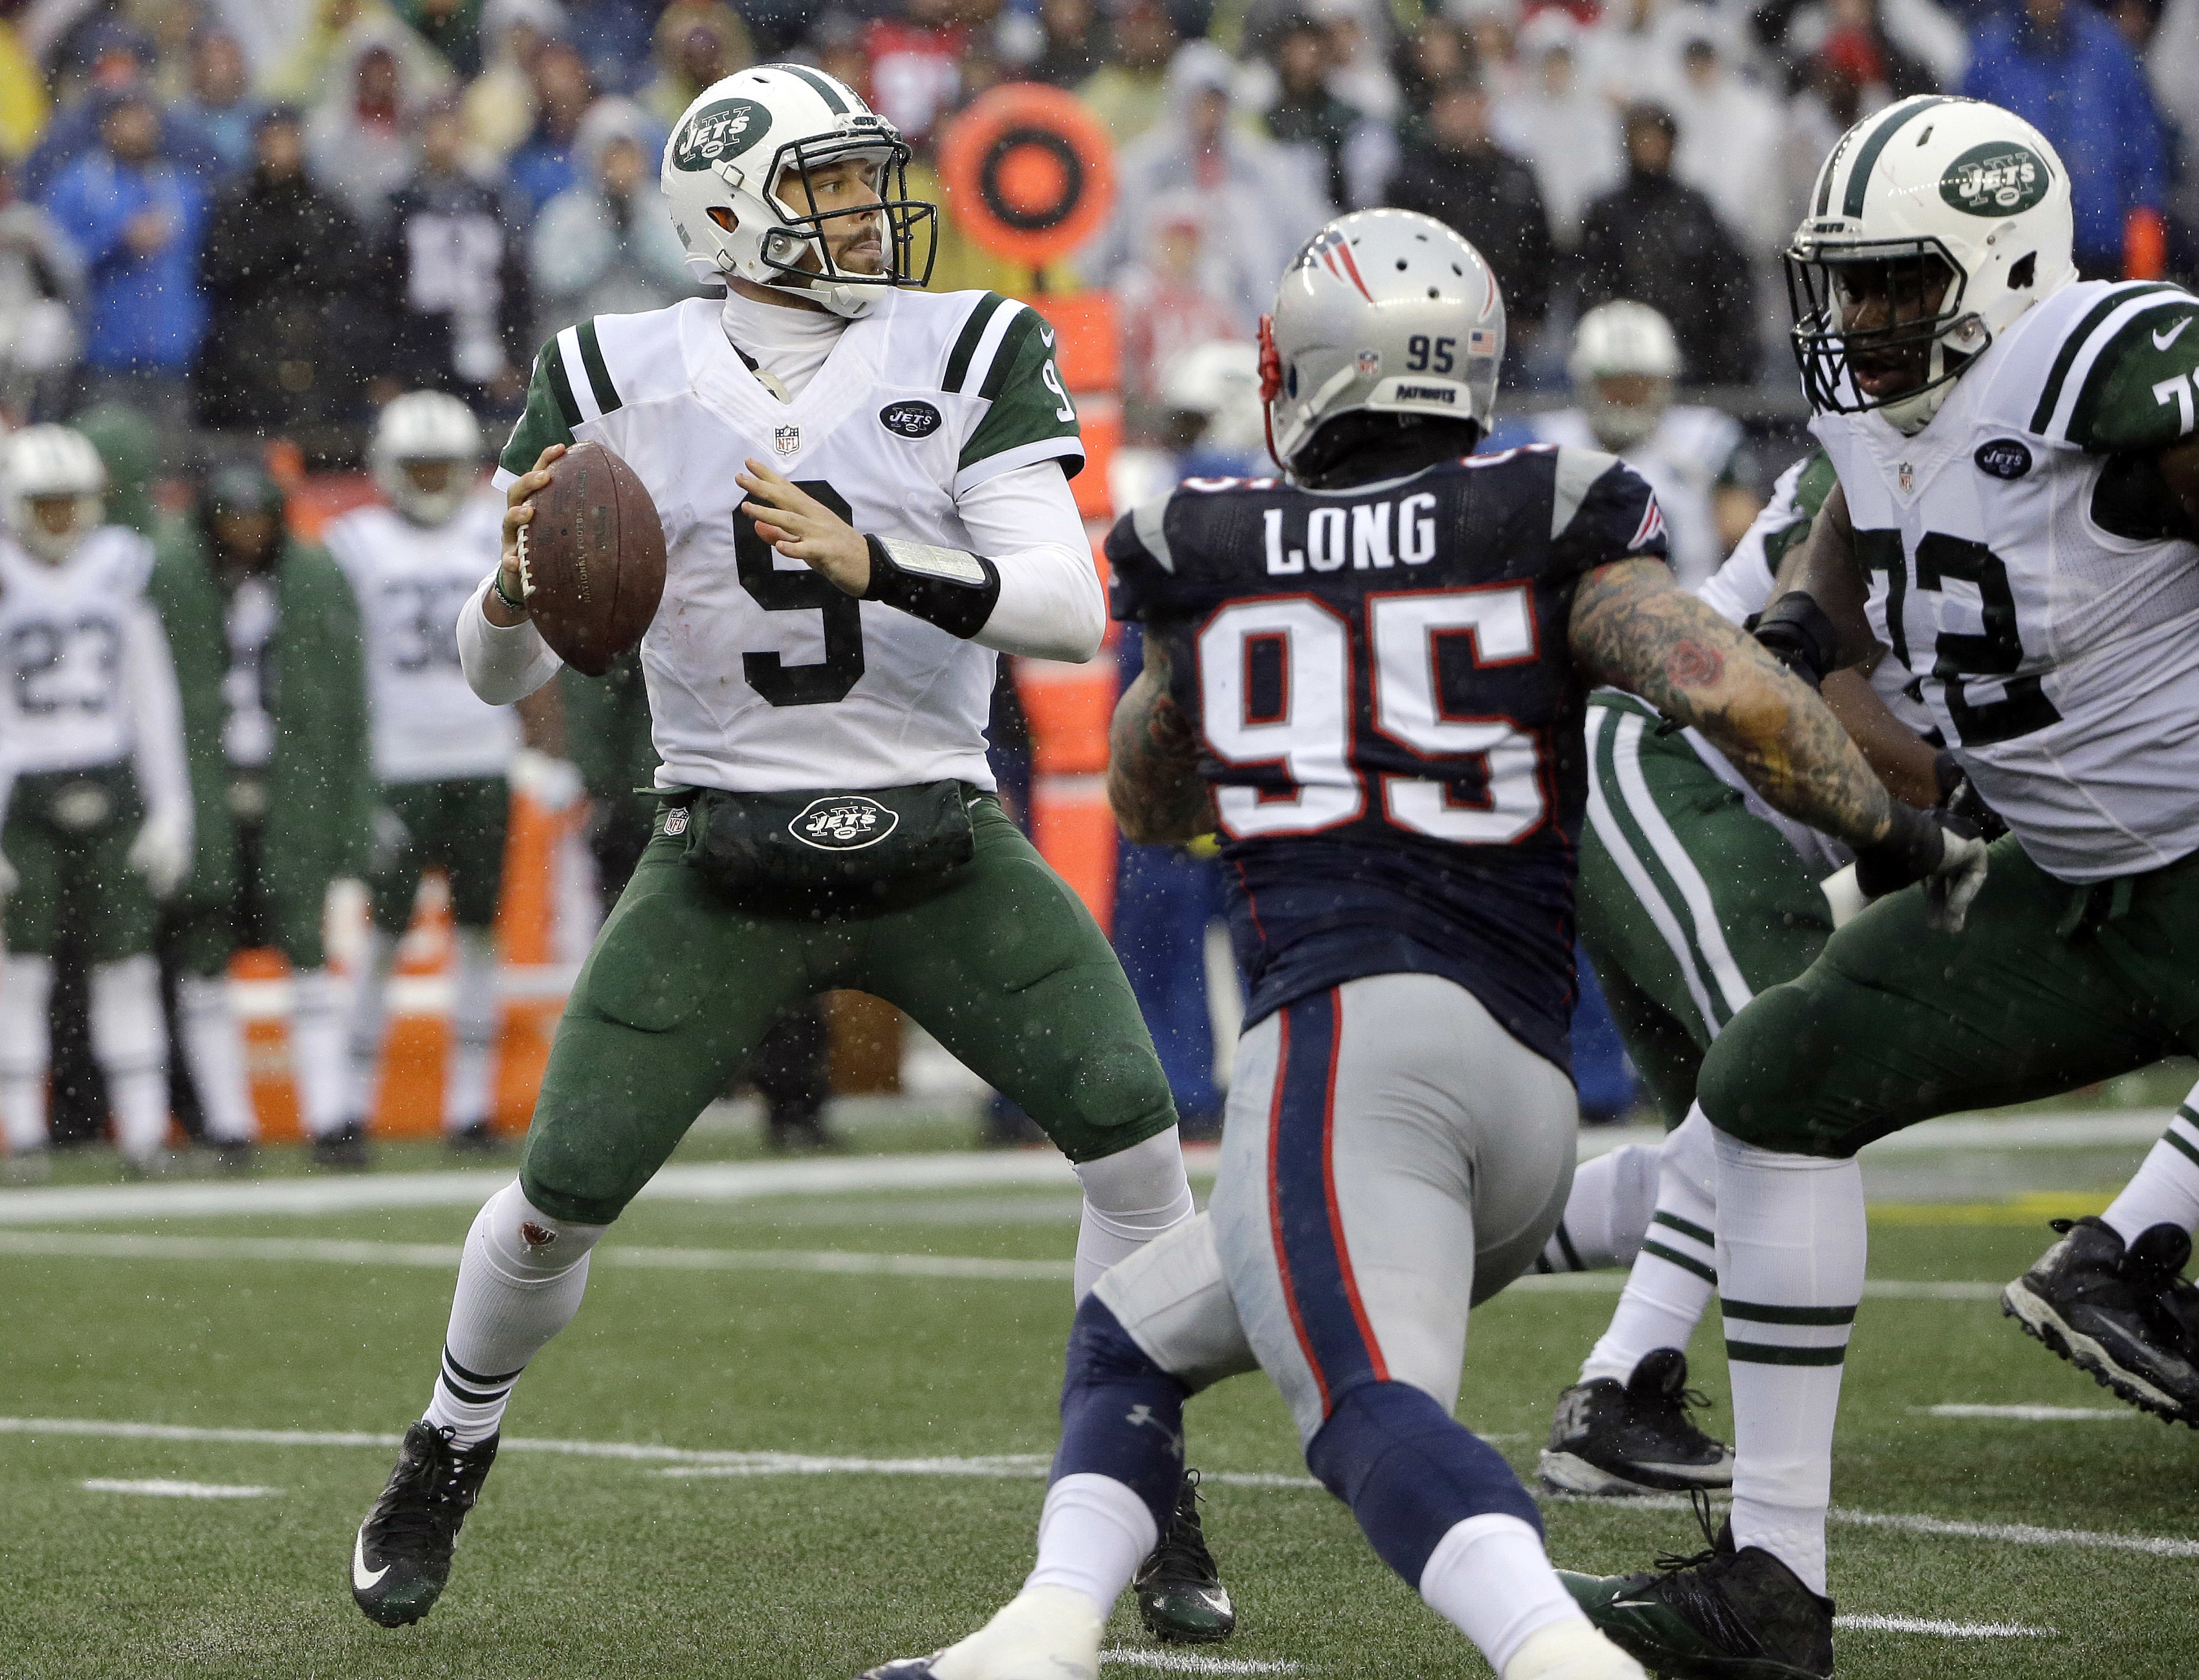 New York Jets quarterback Bryce Petty (9) looks for a receiver under pressure from New England Patriots defensive end Chris Long (95) during the first half of an NFL football game, Saturday, Dec. 24, 2016, in Foxborough, Mass. (AP Photo/Elise Amendola)